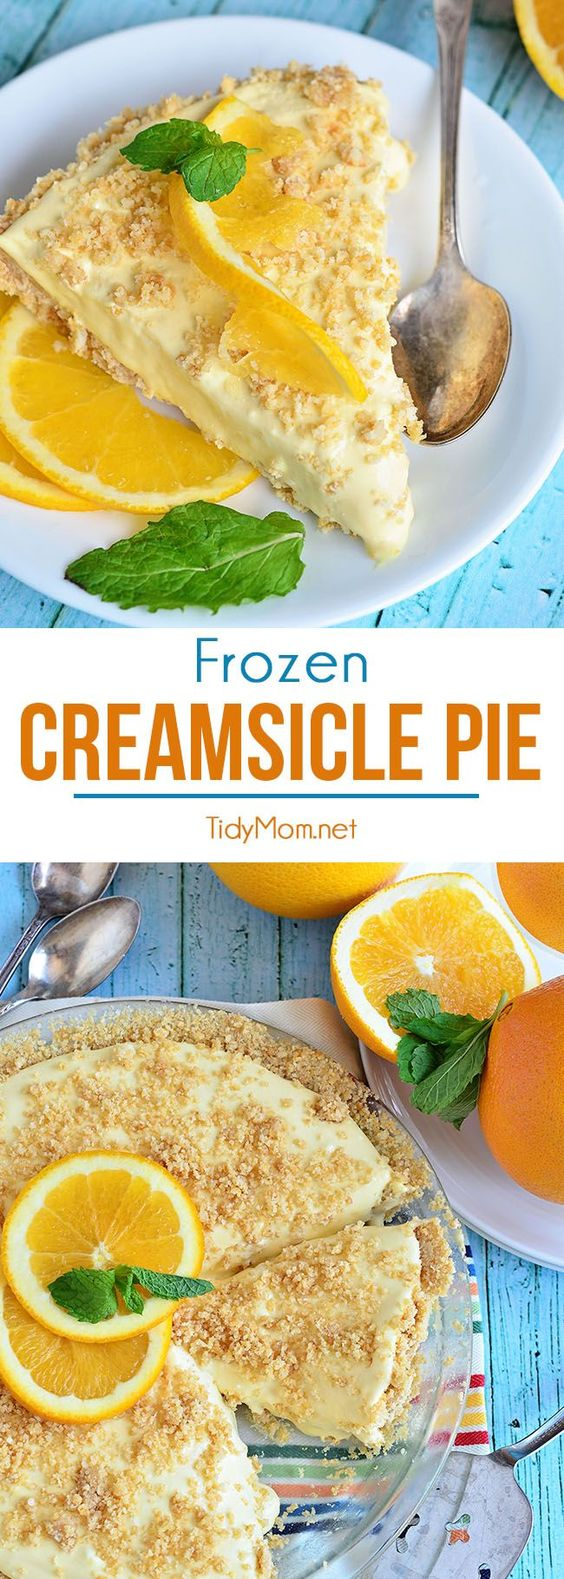 ... , you're going to love this Frozen Creamsicle Pie. It's the